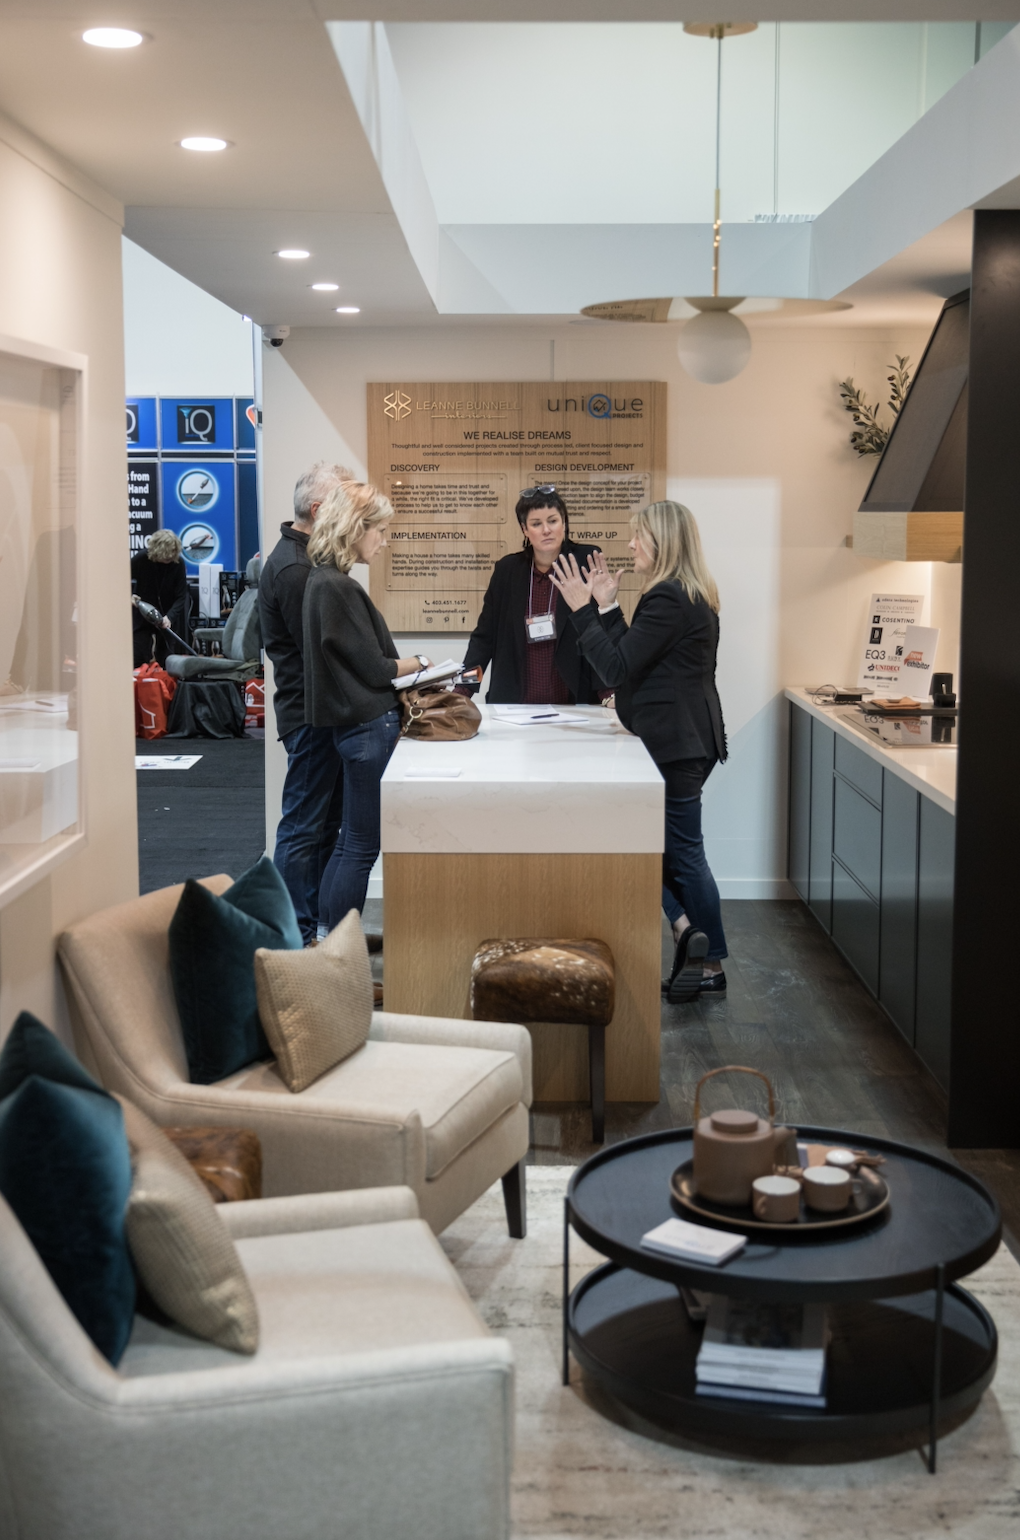 leanne bunnell interior design calgary the renovation show exhibit clean contemporary timeless classic